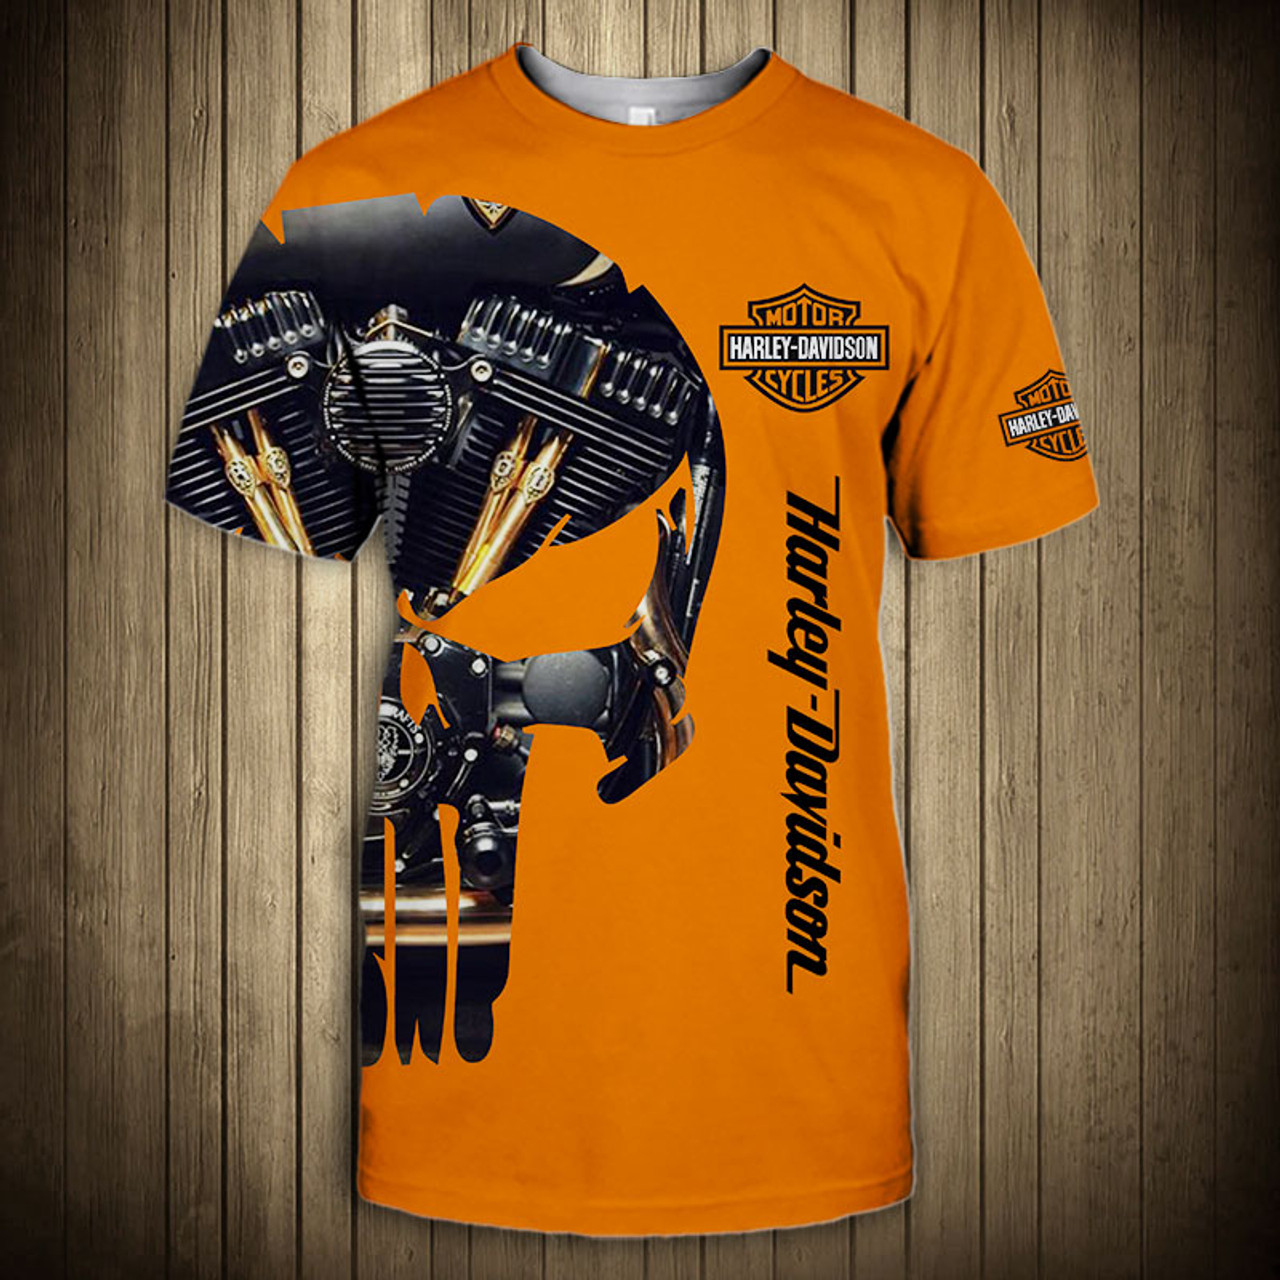 **(OFFICIAL-HARLEY-DAVIDSON-MOTORCYCLE-FASHION-TEES/CUSTOM-DETAILED-3D-GRAPHIC-PRINTED-PUNISHER-SKULL-TWIN-ENGINE-DESIGN/FEATURING-OFFICIAL-CUSTOM-HARLEY-3D-LOGOS & OFFICIAL-CLASSIC-HARLEY-ORANGE-COLORS/WARM-PREMIUM-HARLEY-TRENDY-RIDING-SPORT-TEES)**